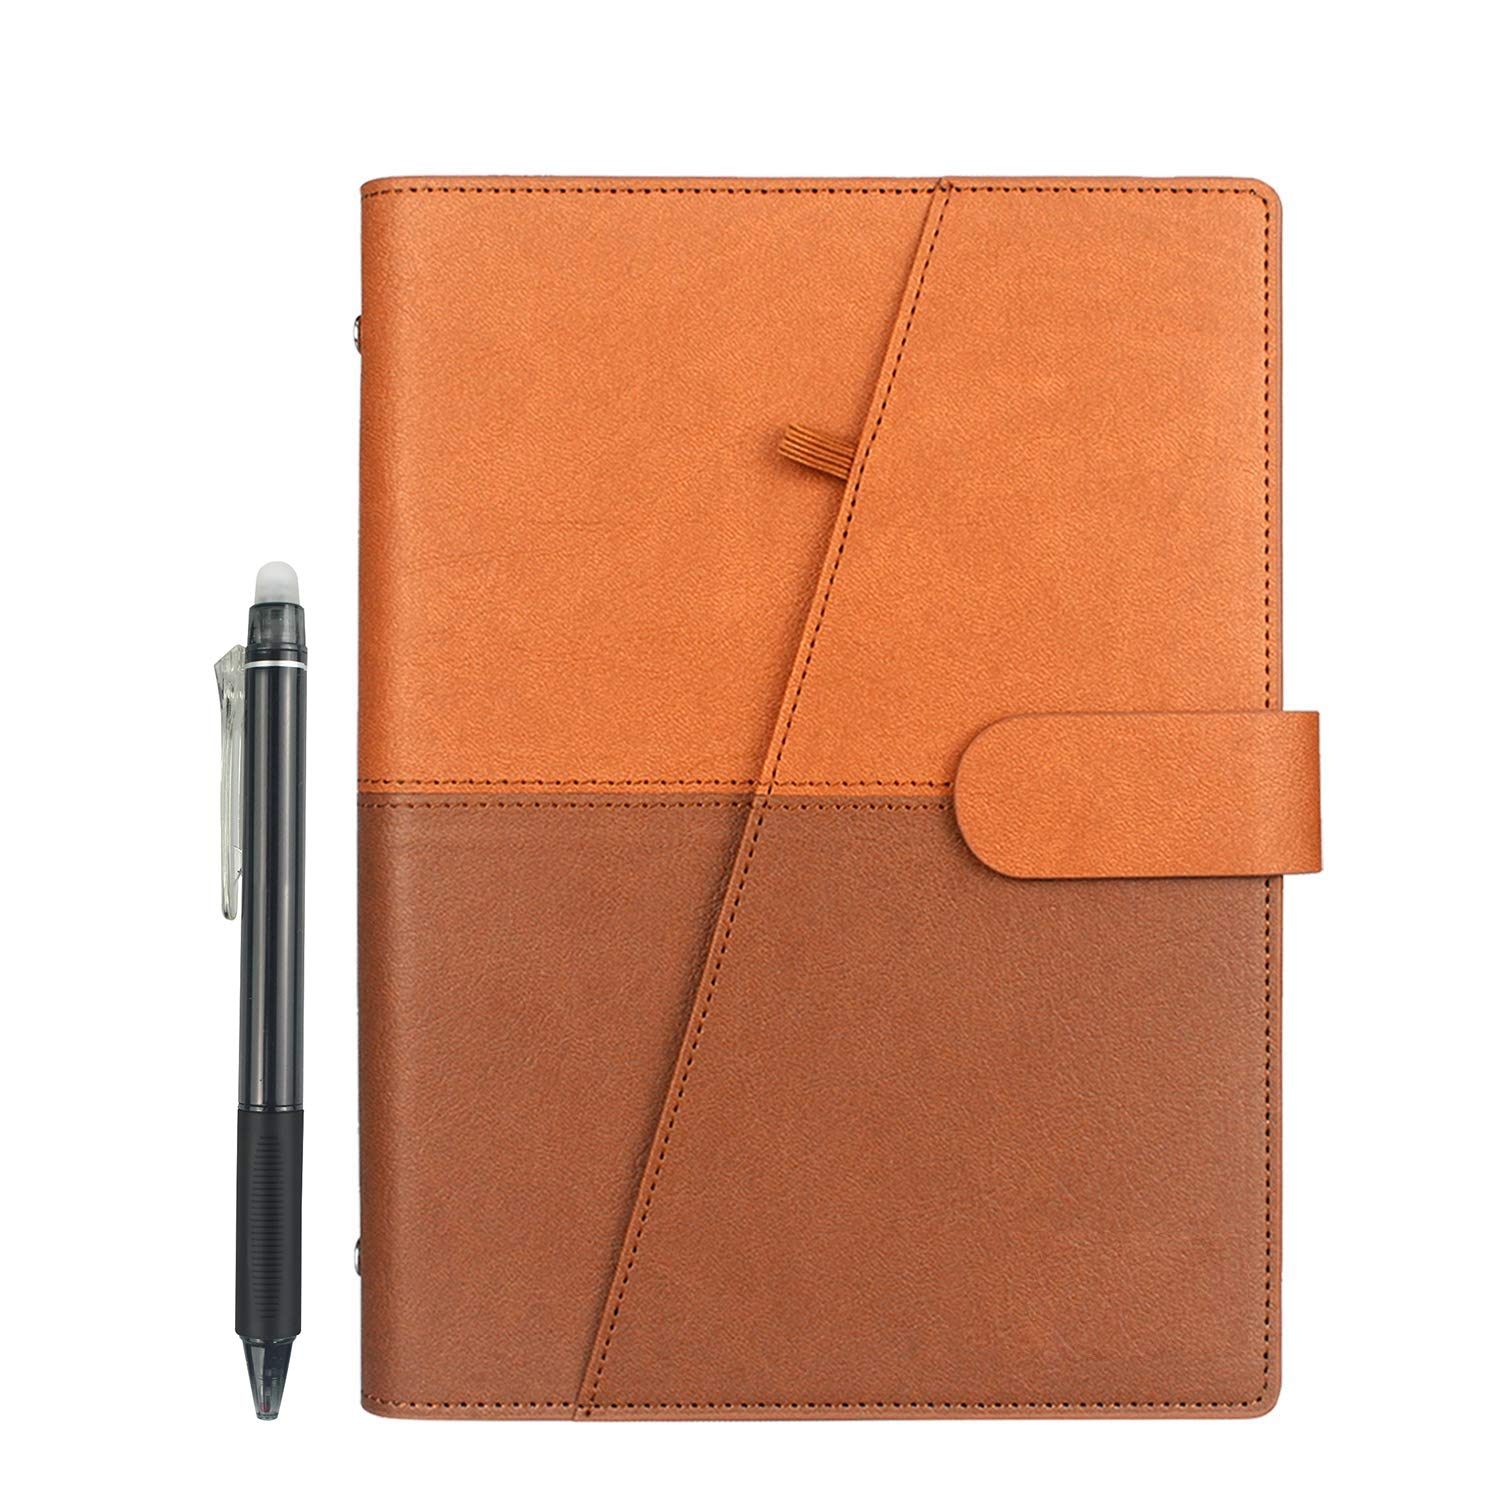 NEWYES Reusable Smart Notebook A5, PU Leather, Pen Included, Brown, 210X142  mm